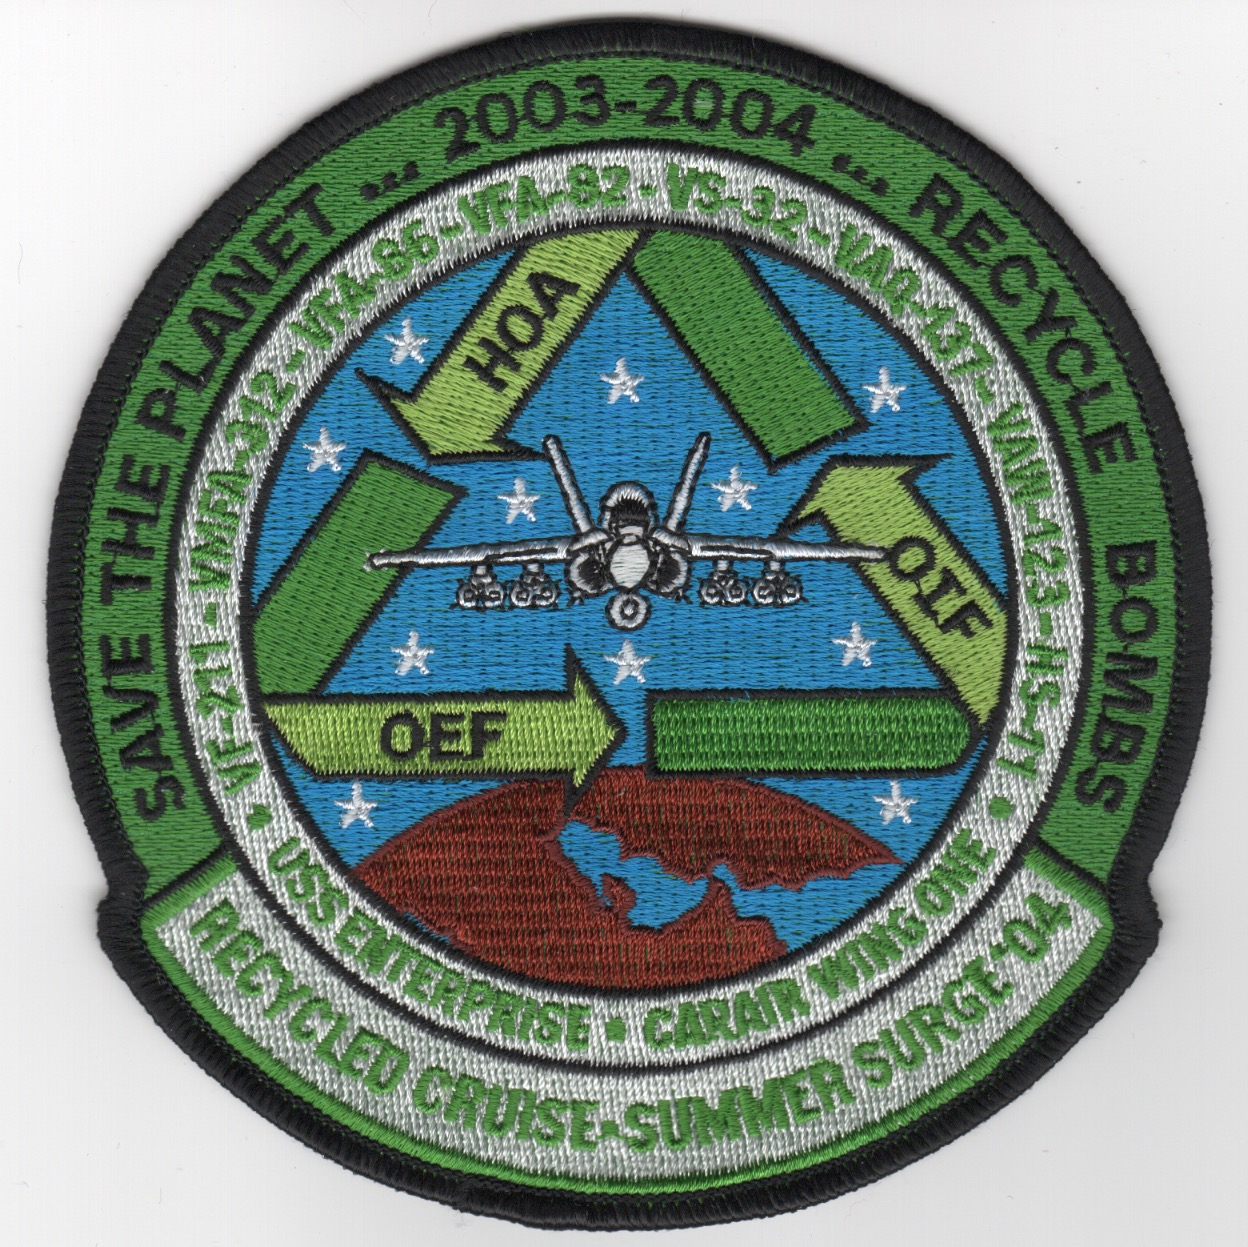 394) VFA-82 2004 'HOA' Cruise Patch